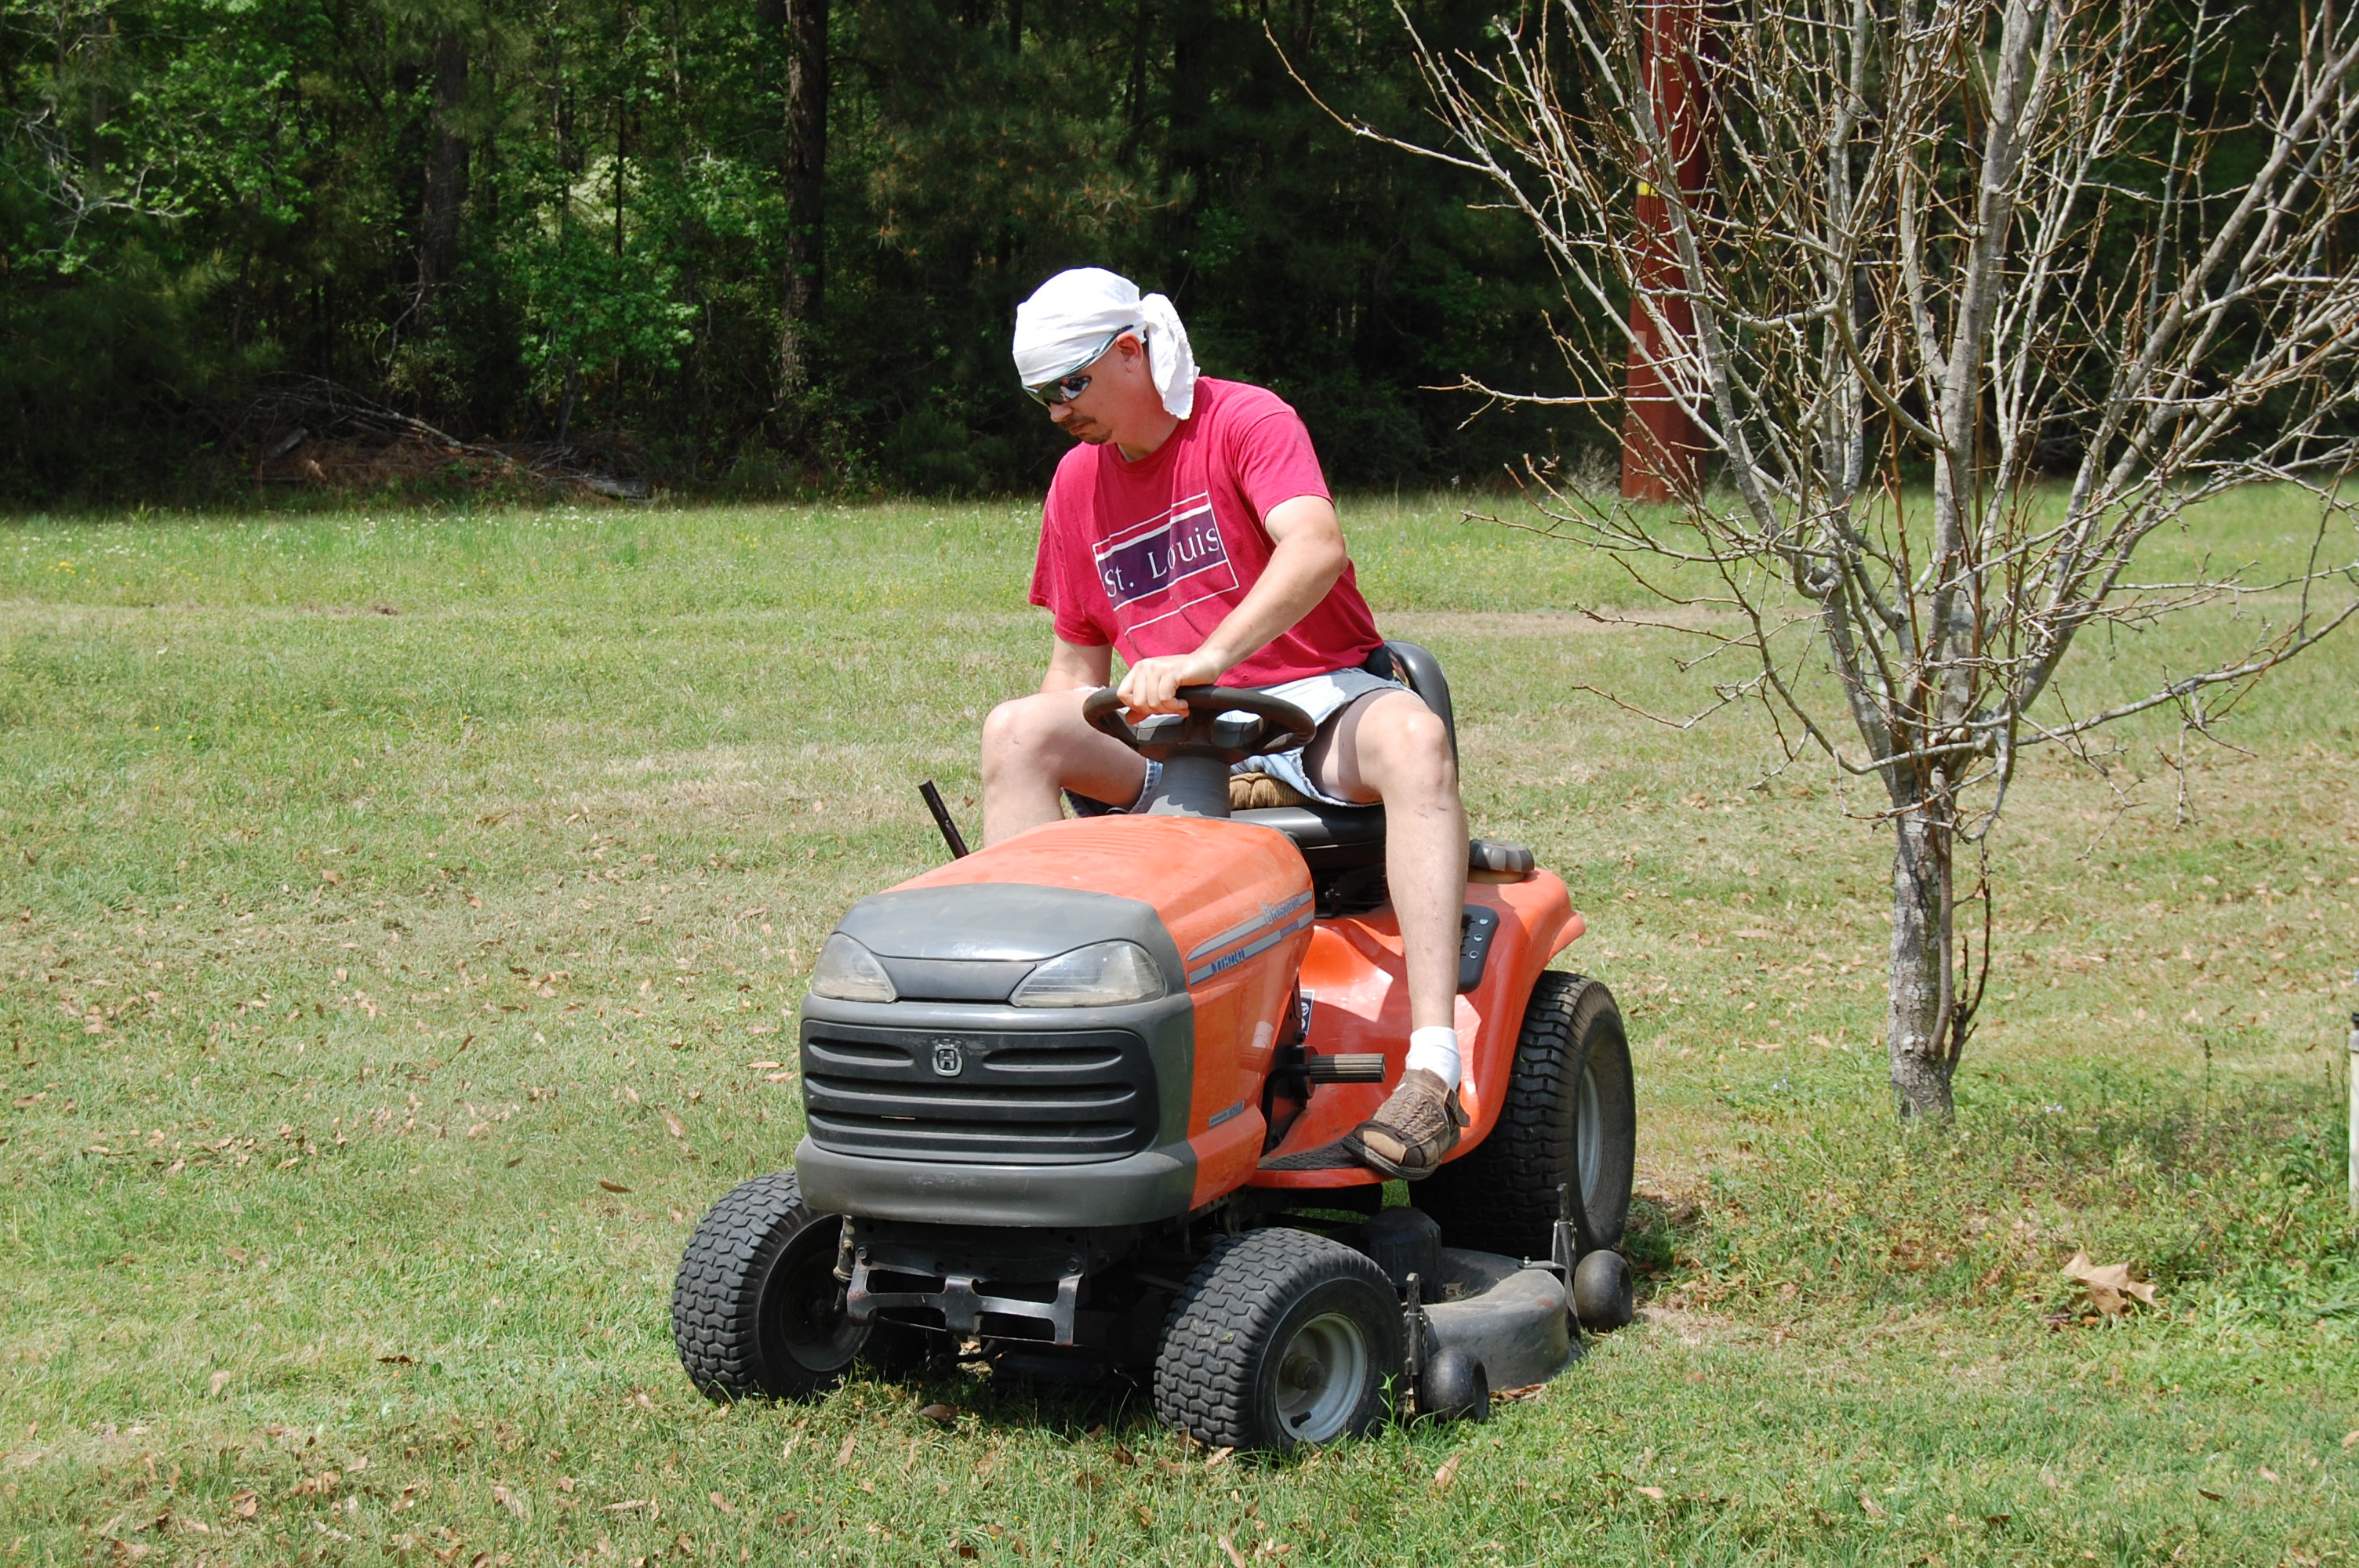 Terry on Mower